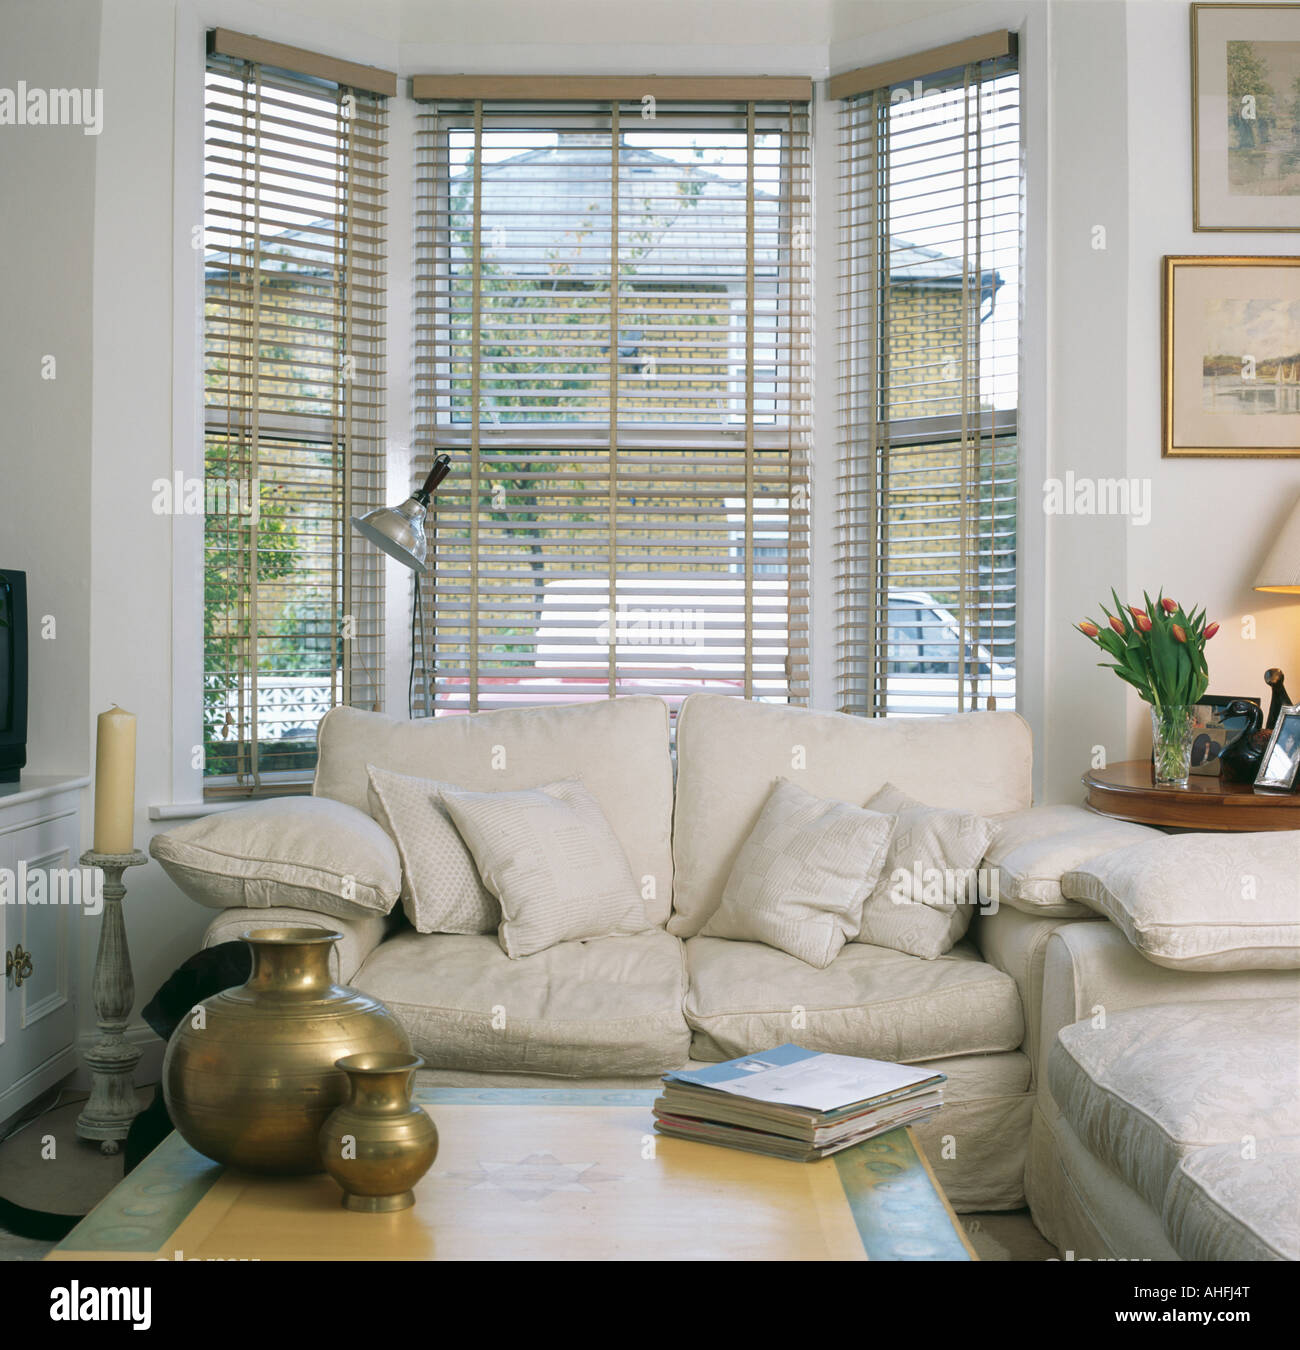 cream sofa in front of bay window with slatted blind in living room with  brass pots on coffee table